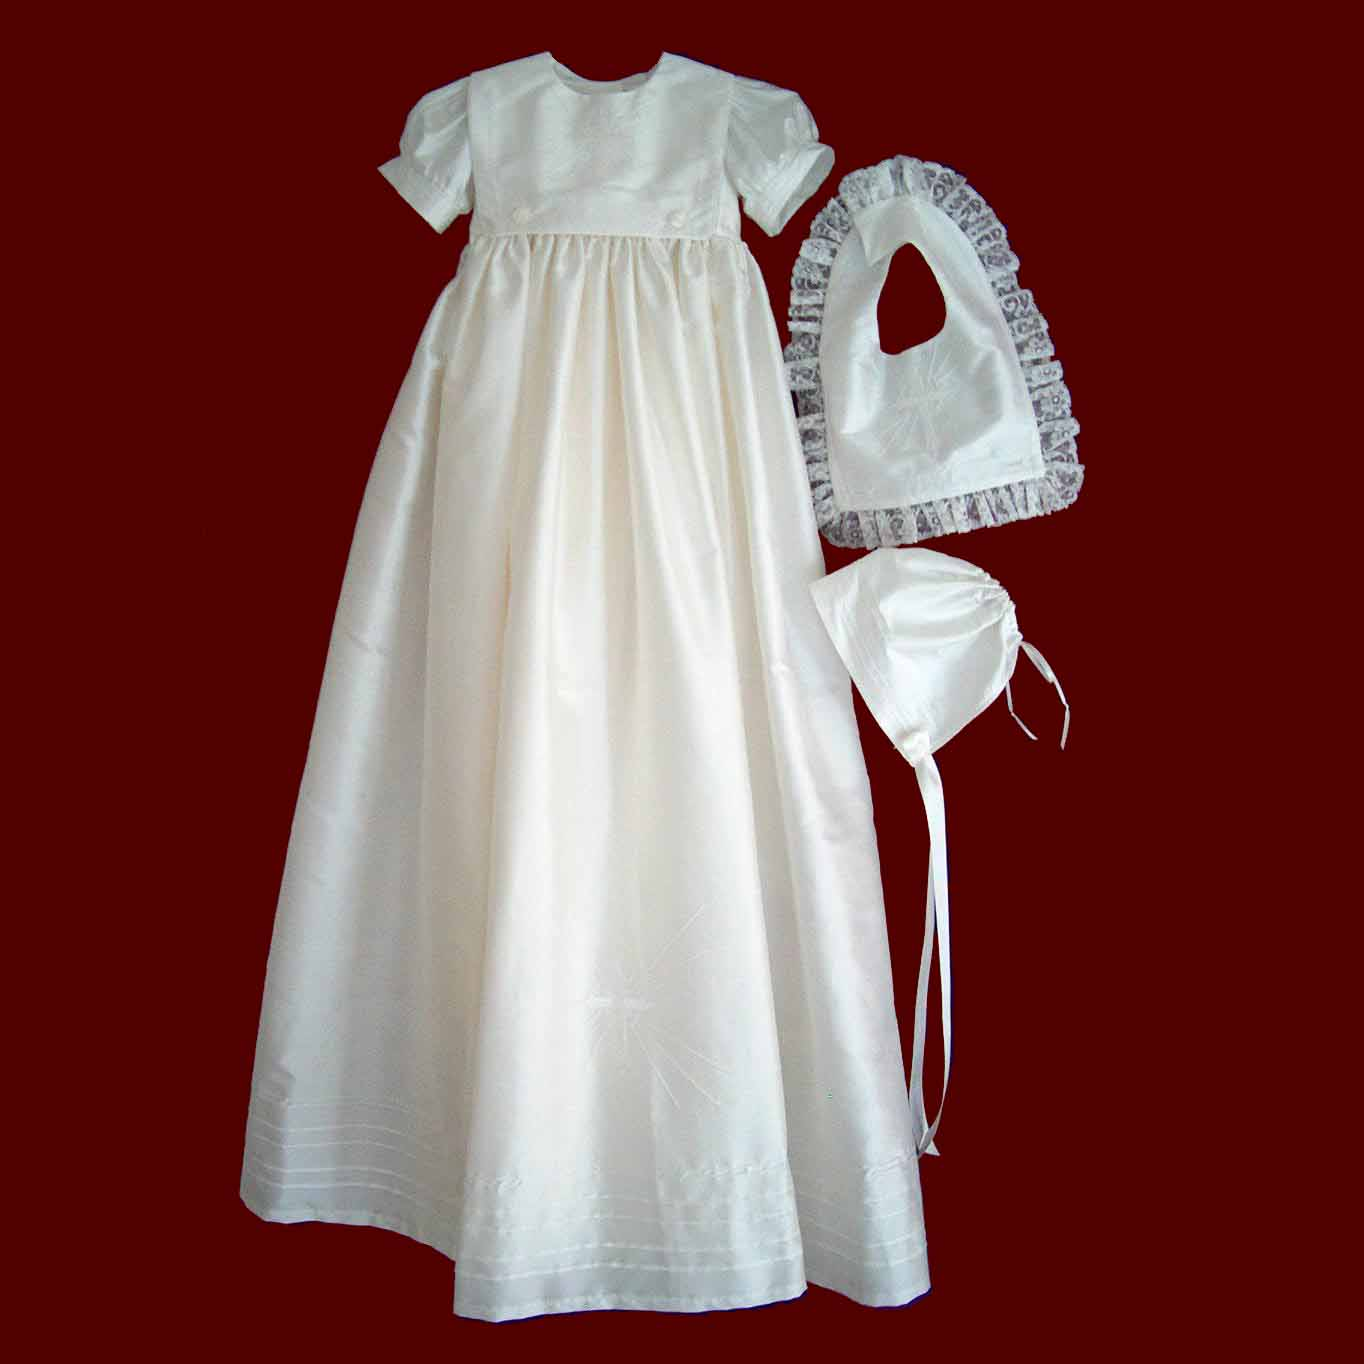 75c789e64 Silk Christening Gown with Detachable Boy and Girl Bibs - Boys Gowns ...